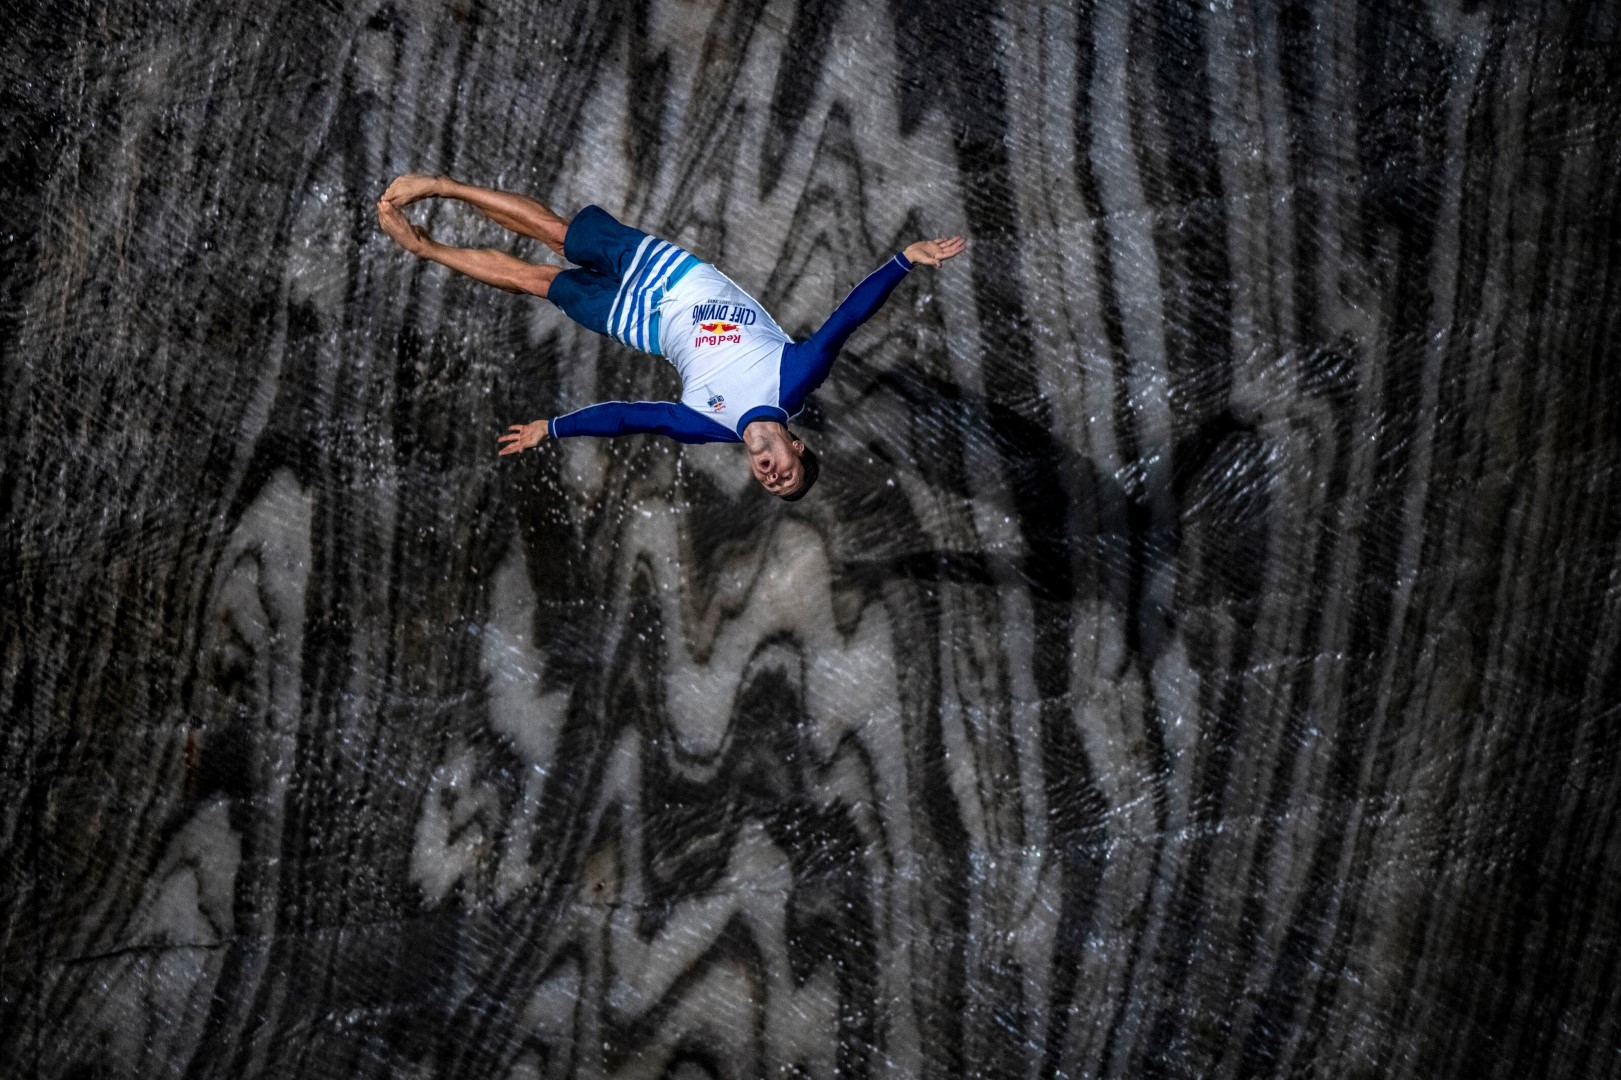 Constantin Popovici of Romania dives at Salina Turda, Romania on October 07, 2020. // Joerg Mitter / Red Bull Content Pool // SI202010120207 // Usage for editorial use only //